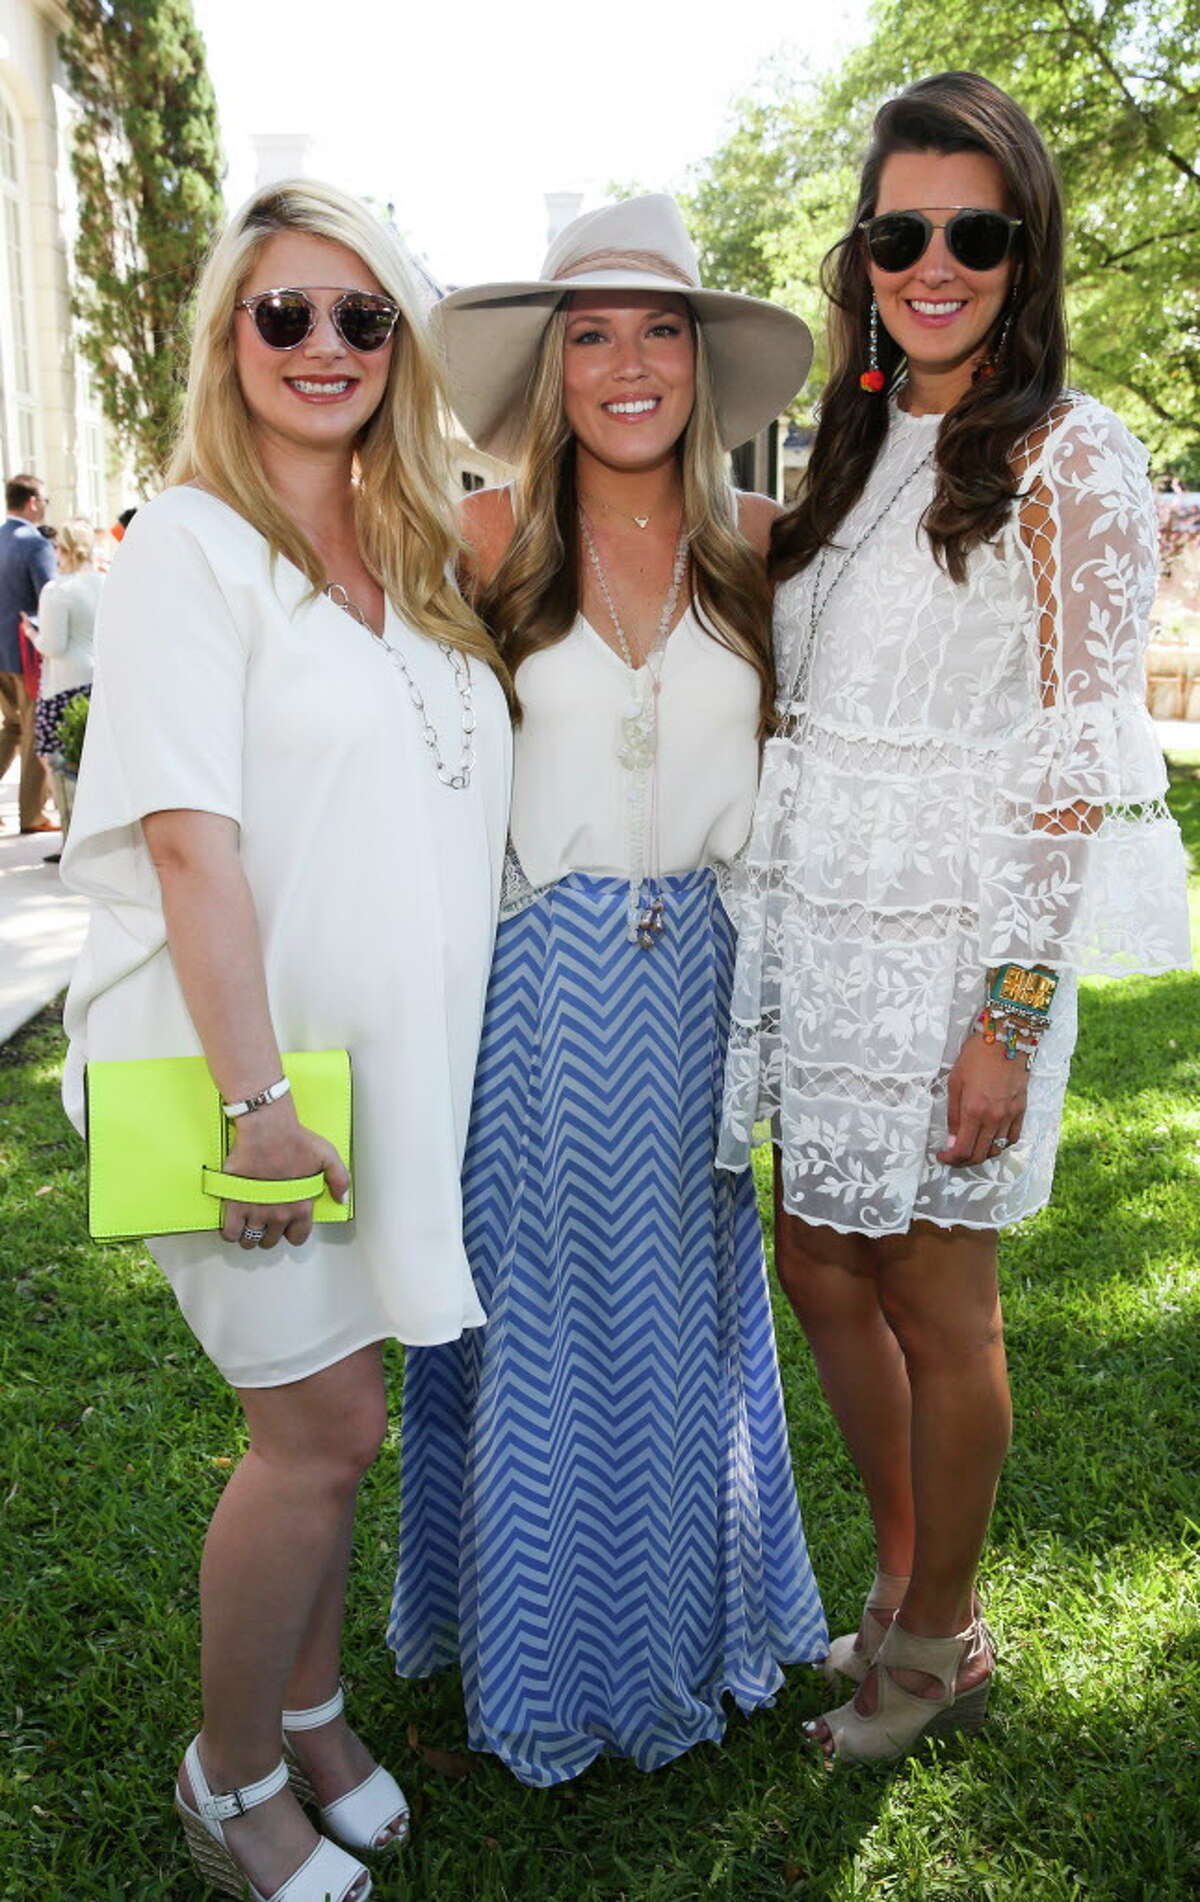 Christine Falgout, from left, Holly Alvis and Kathryn Swain pose for a photo at the inaugural Hats, Hearts, and Horseshoes Kentucky Derby Party